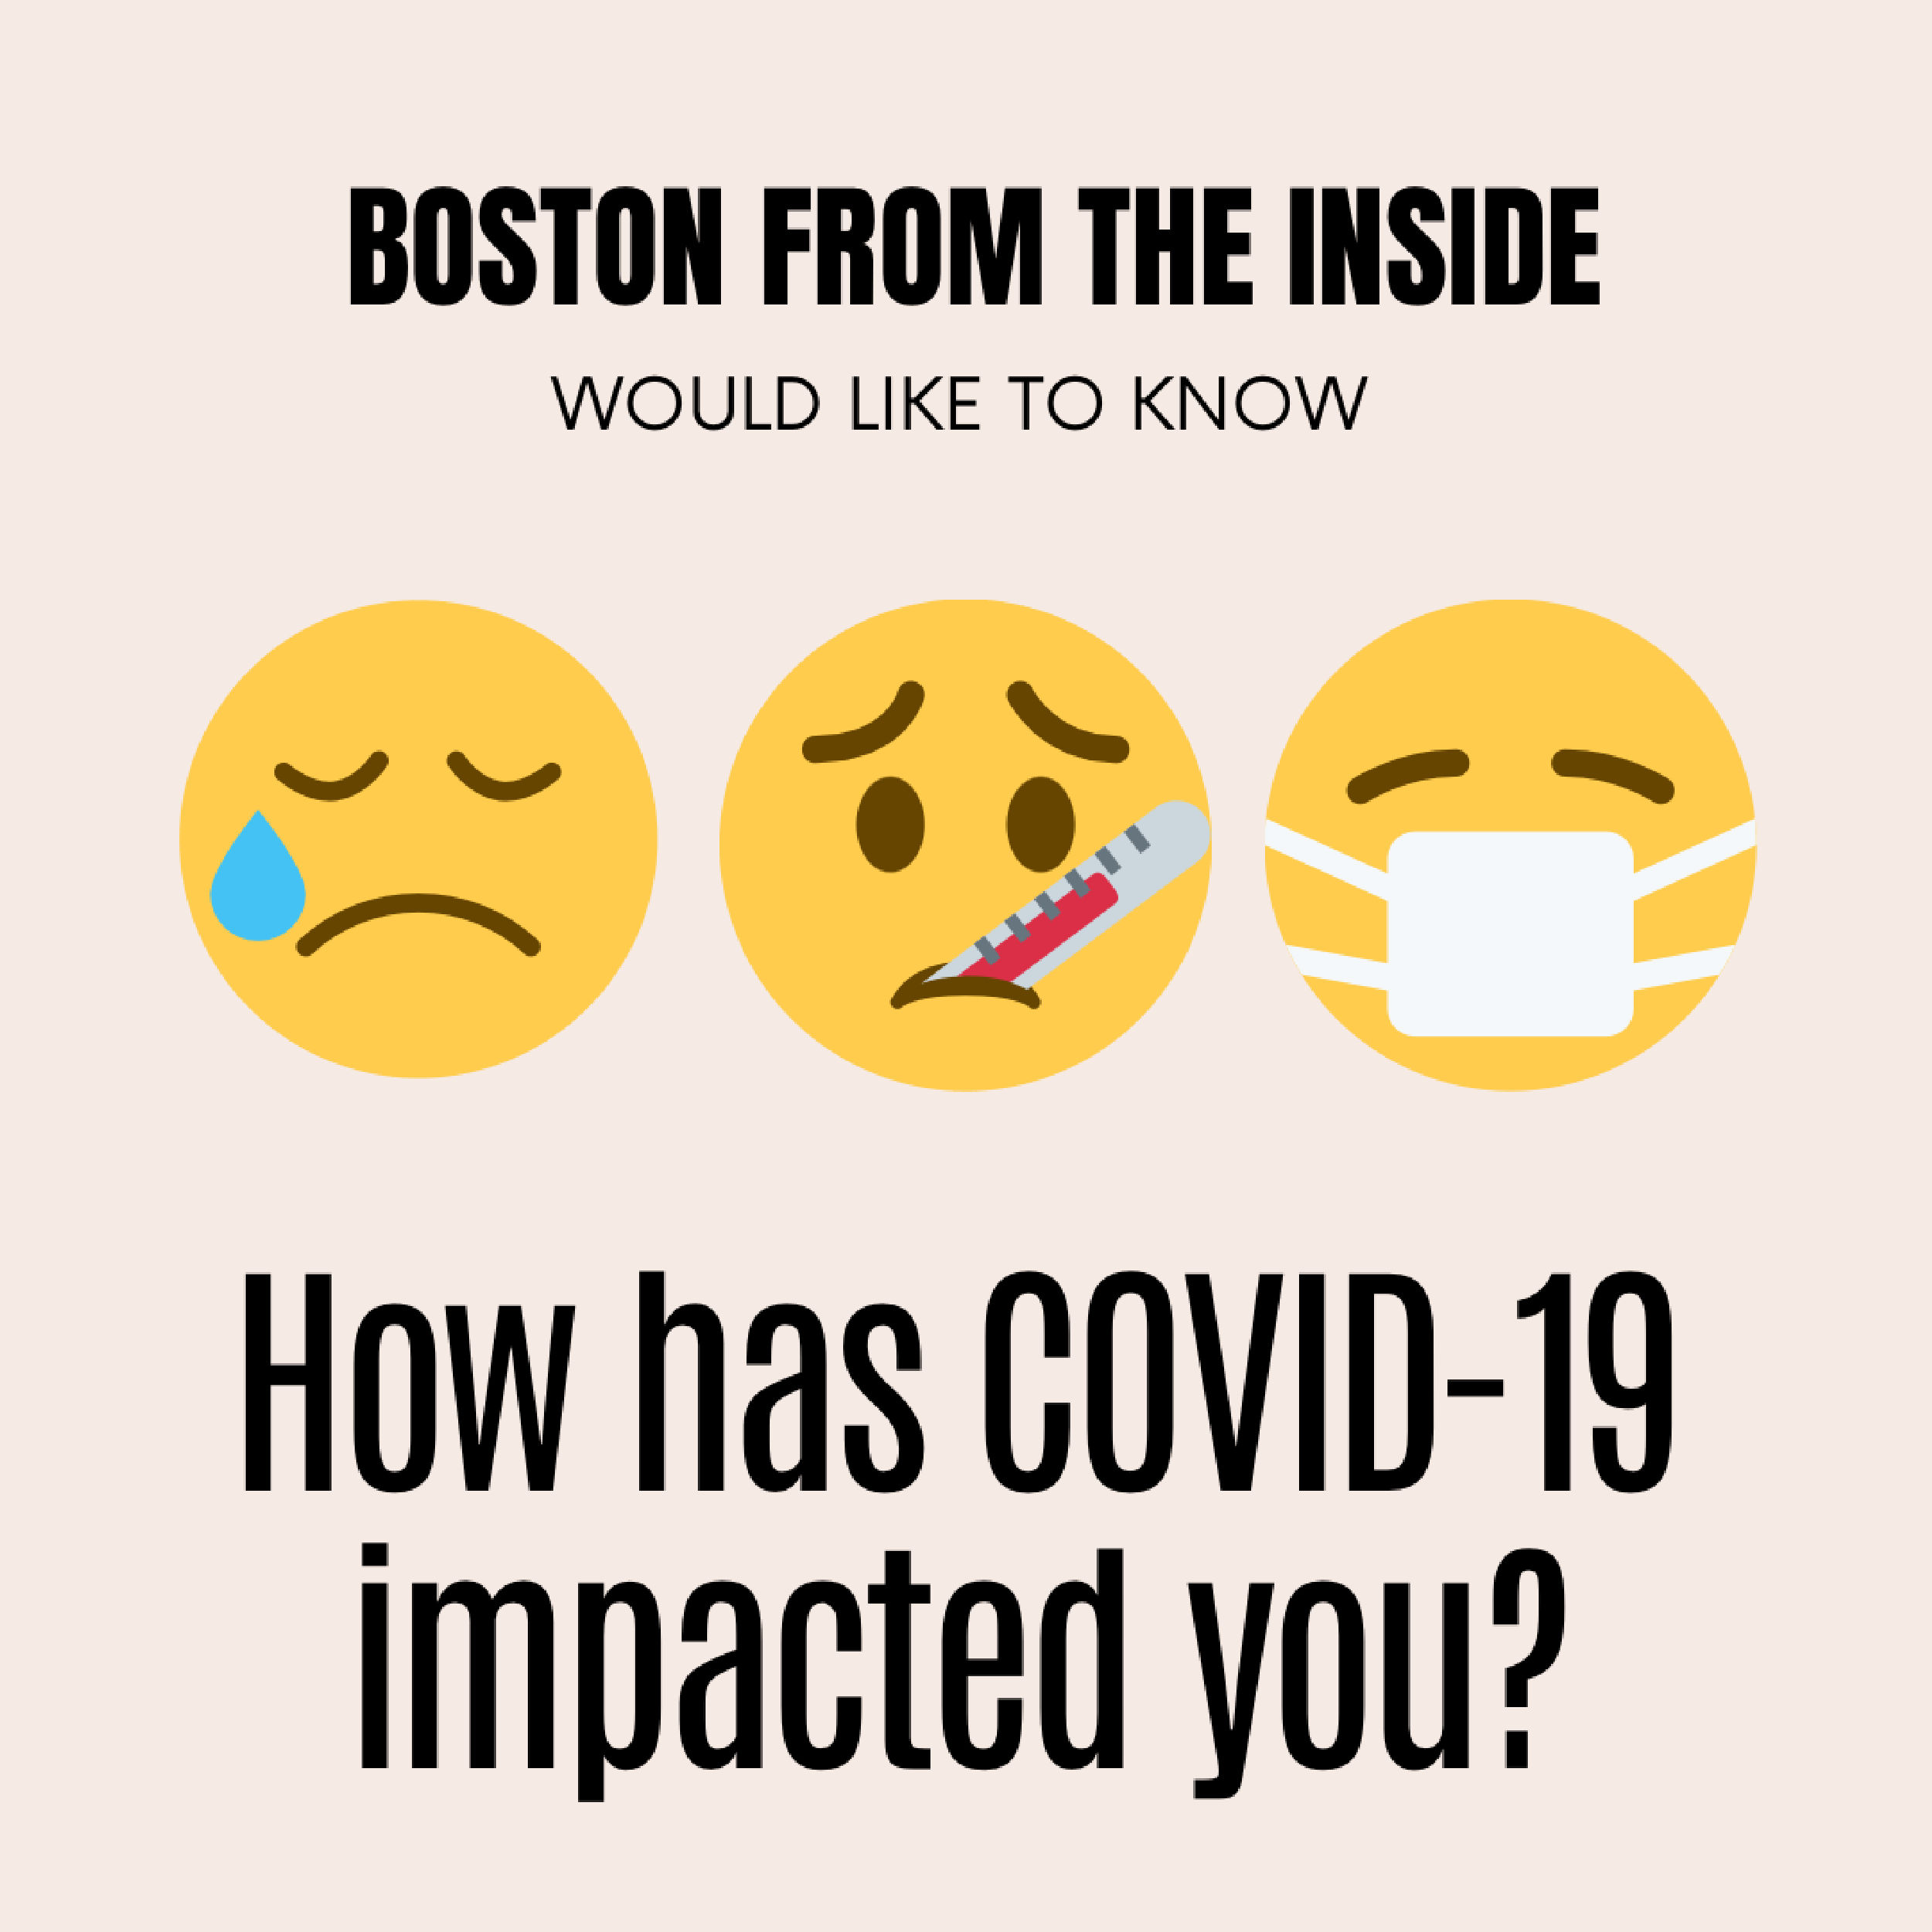 How has COVID-19 impacted you?